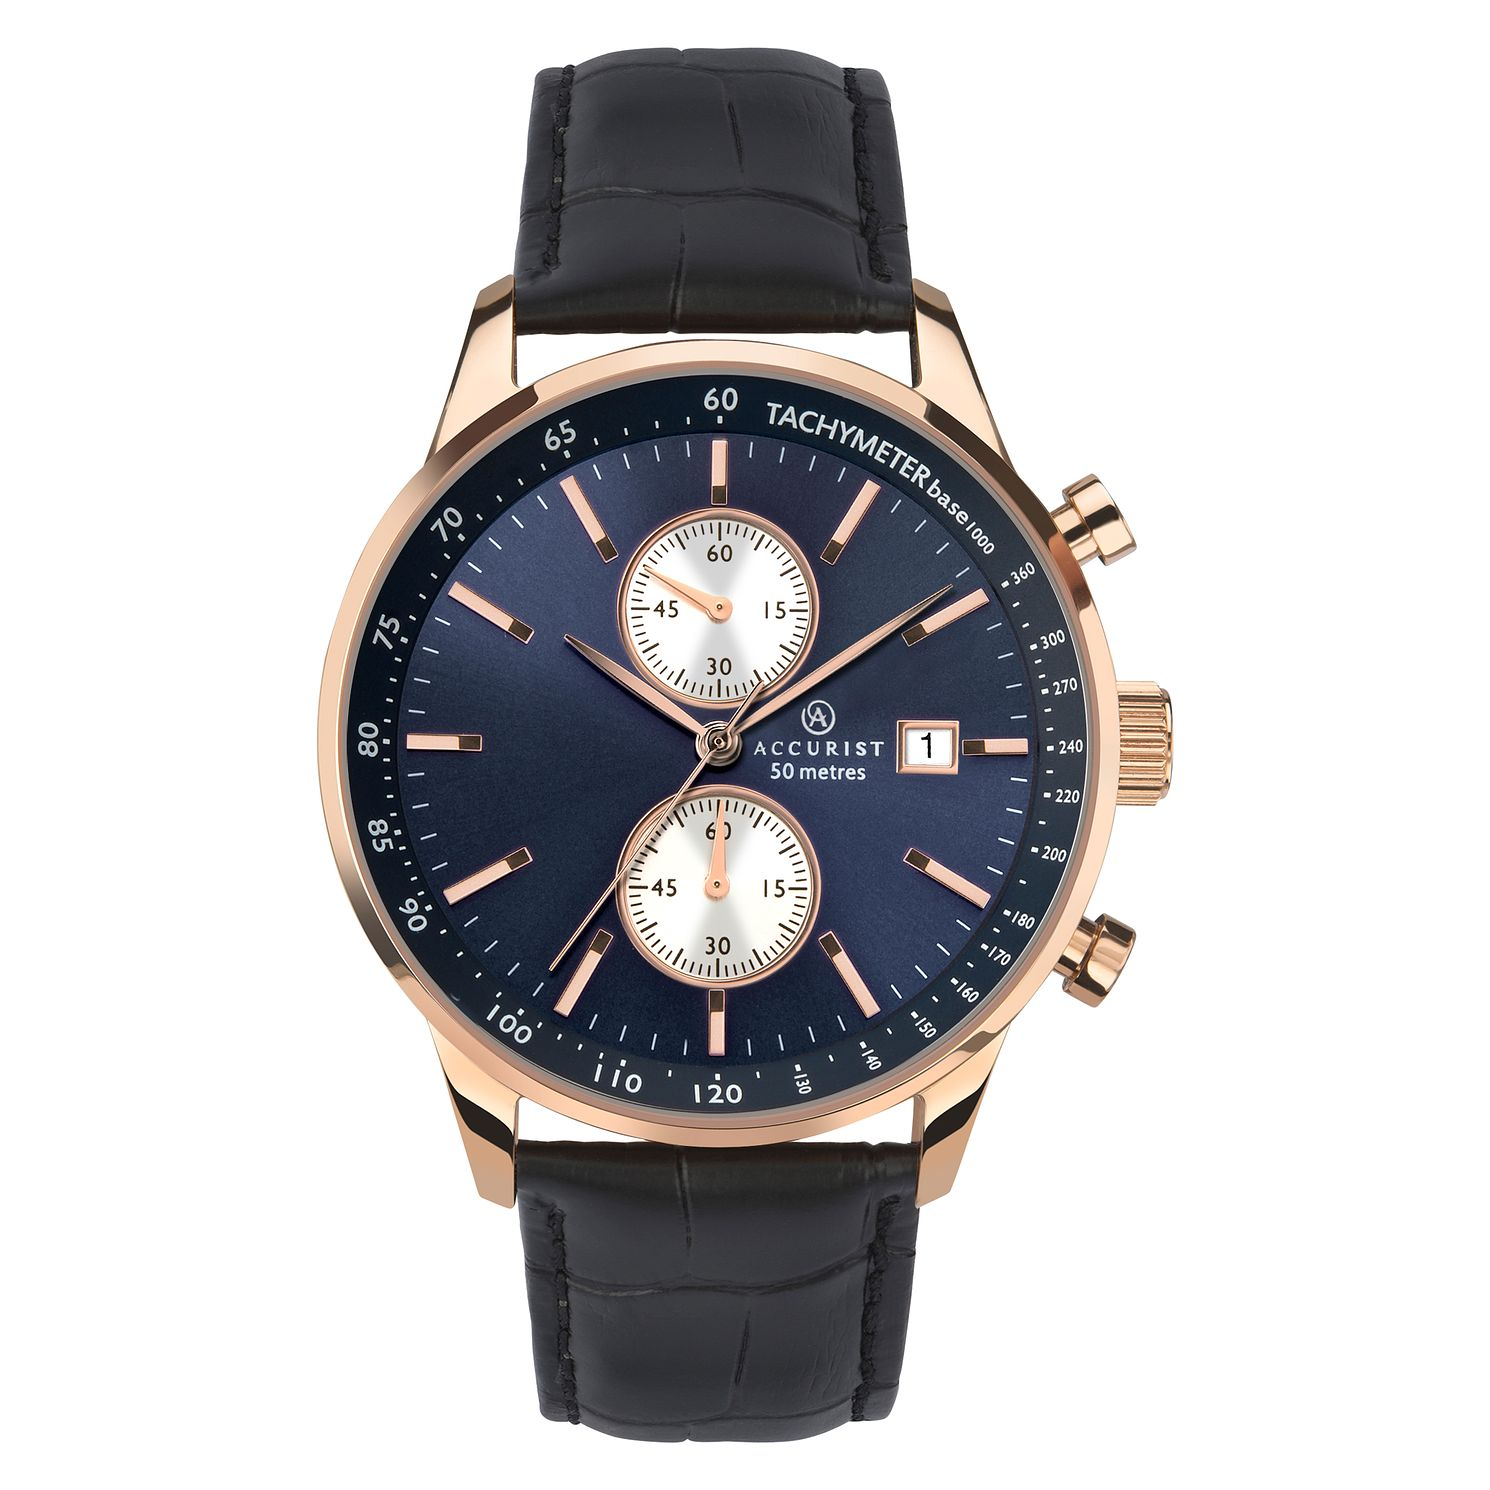 Accurist Men's Chronograph Black Leather Strap Watch - Product number 9792856